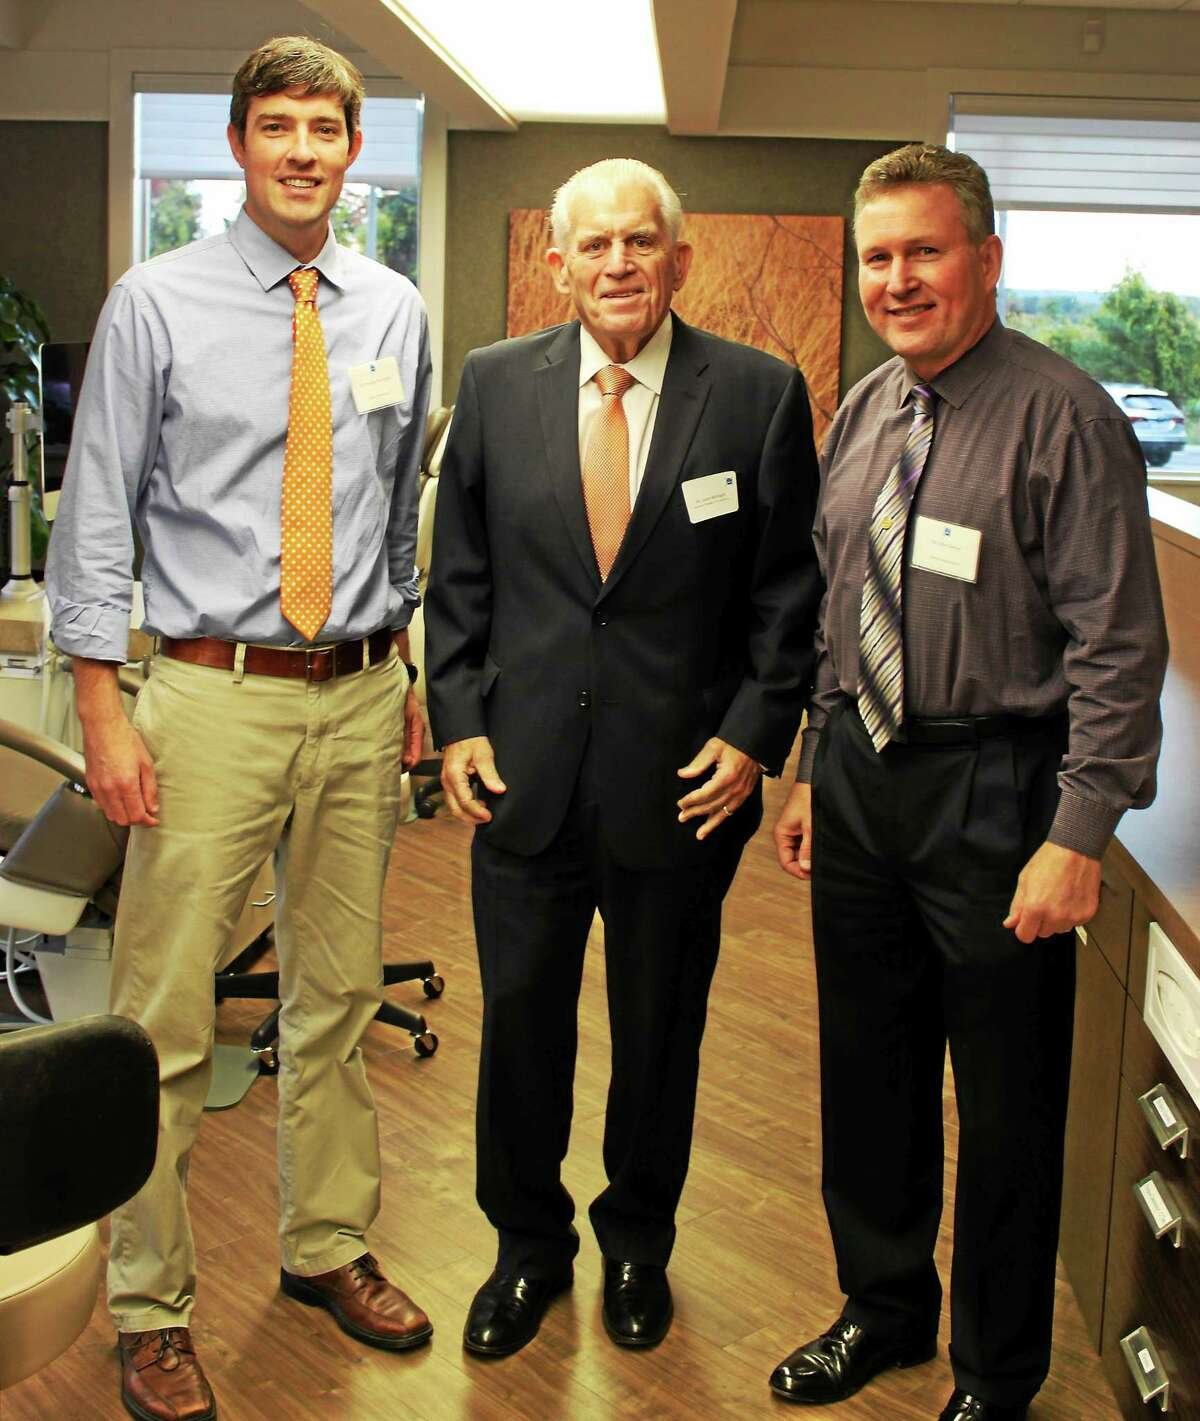 Conroy Orthodontics recently held an open house in its new Middletown location. From left are Dr. Doug H. MacGilpin, Chamber President Larry McHugh and Dr. John J. Conroy.